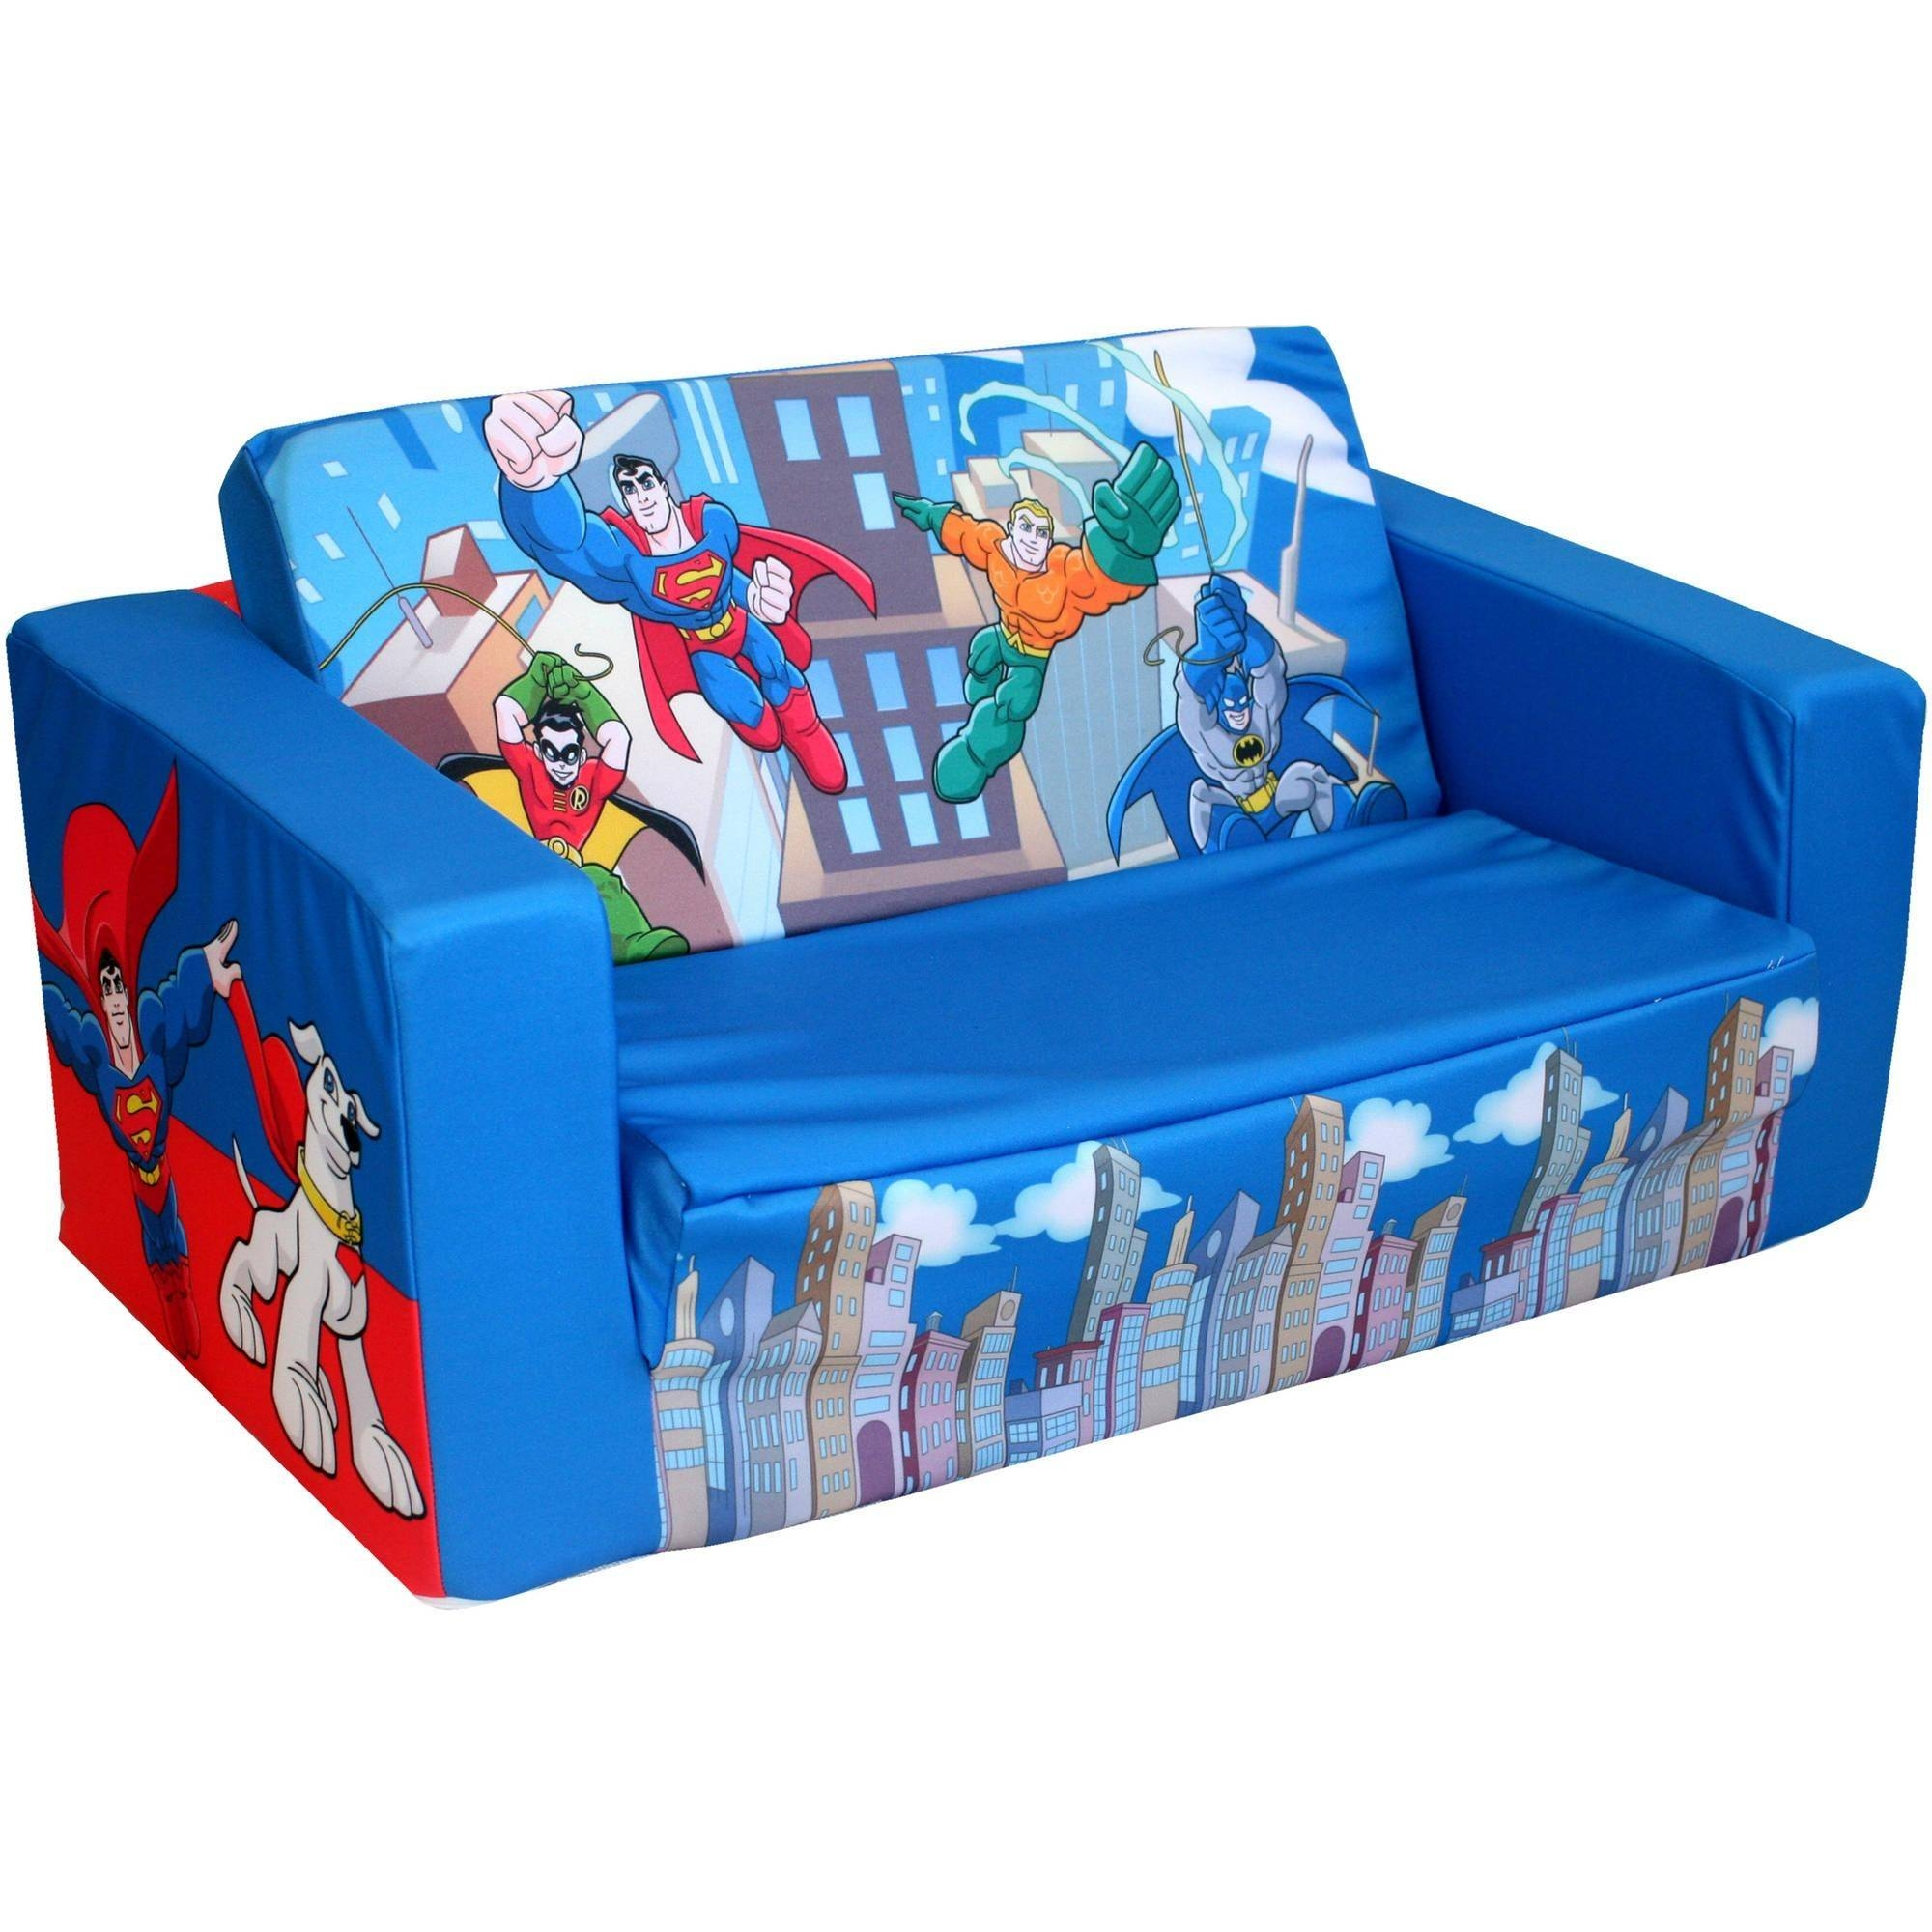 20 Collection Of Mickey Fold Out Couches | Sofa Ideas pertaining to Mickey Fold Out Couches (Image 1 of 15)